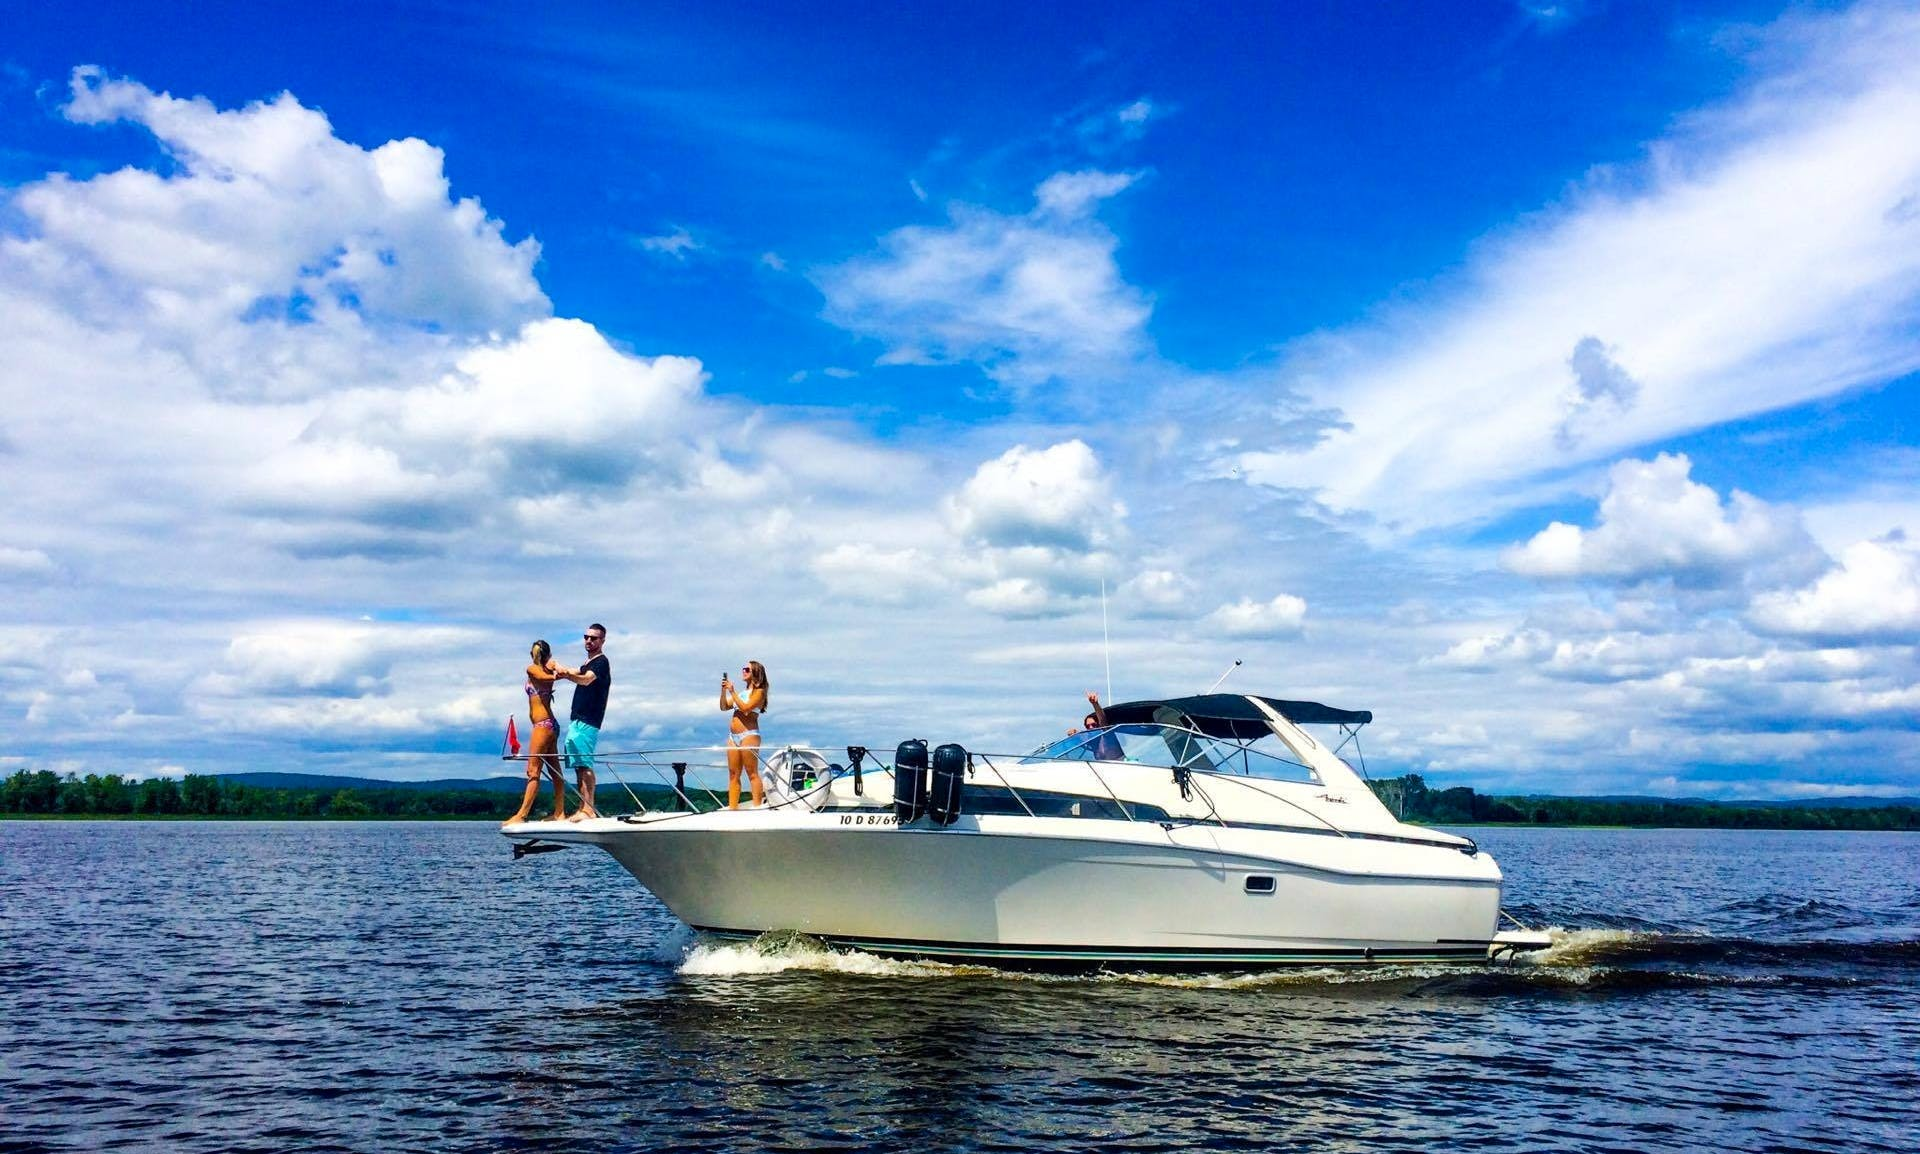 35ft Motor Yacht Charter In Montreal, Canada